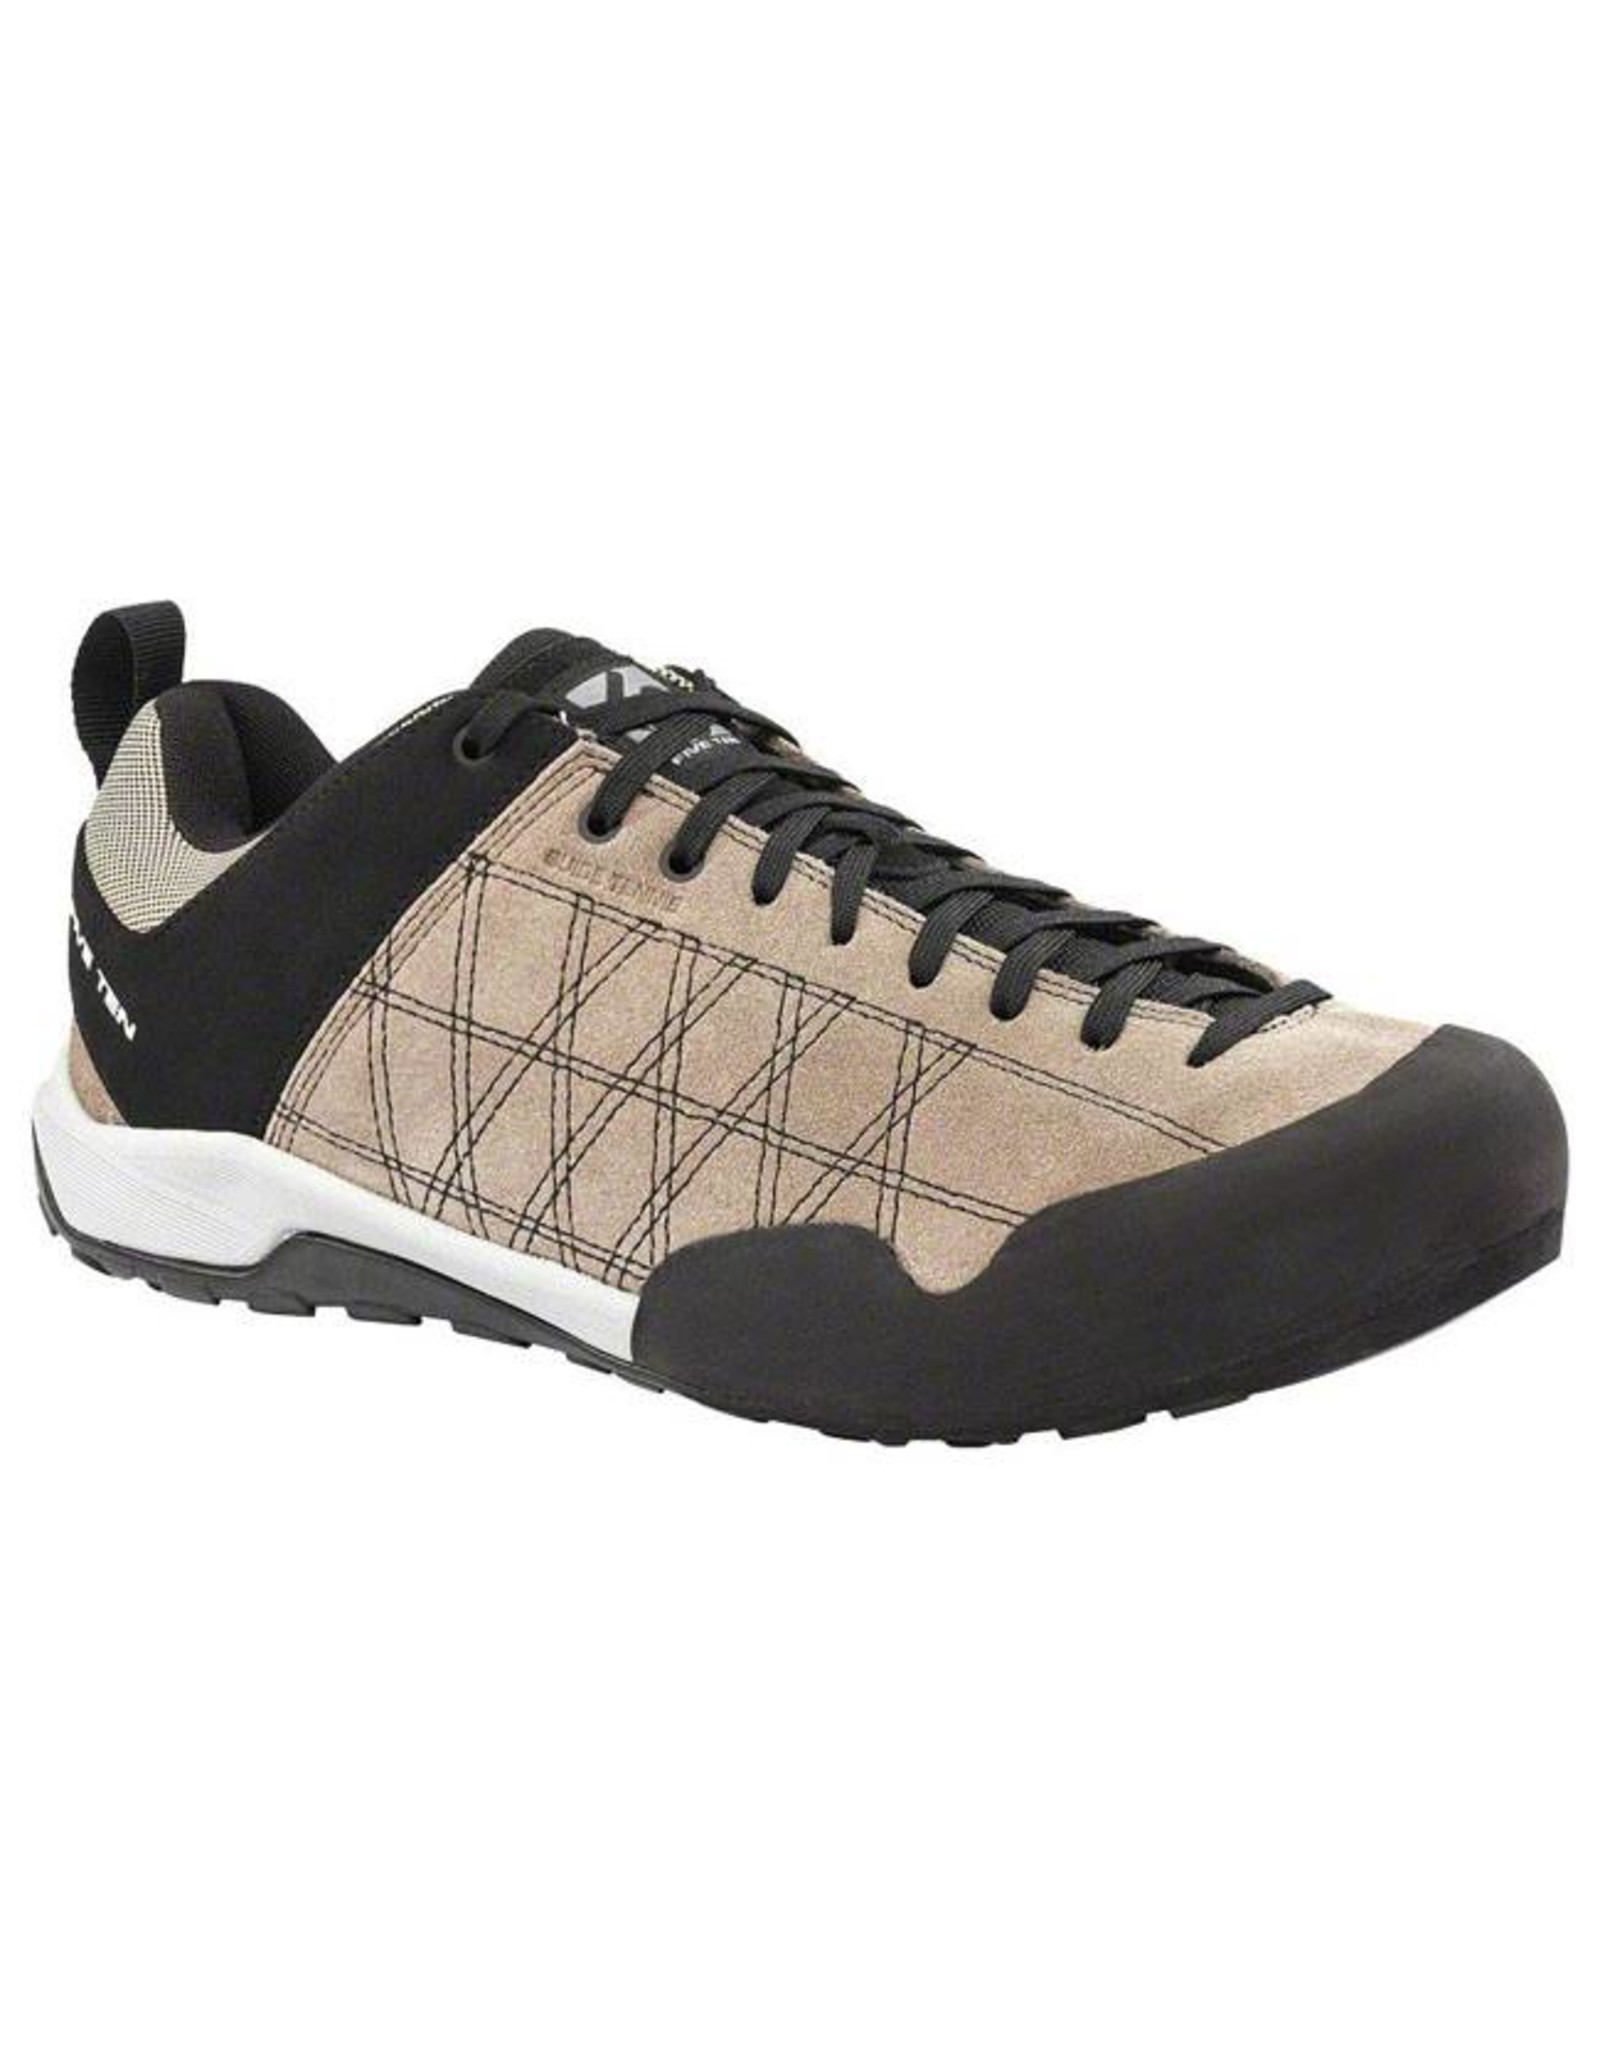 Five Ten Five Ten Guide Tennie Men's Approach Shoe: Twine 12